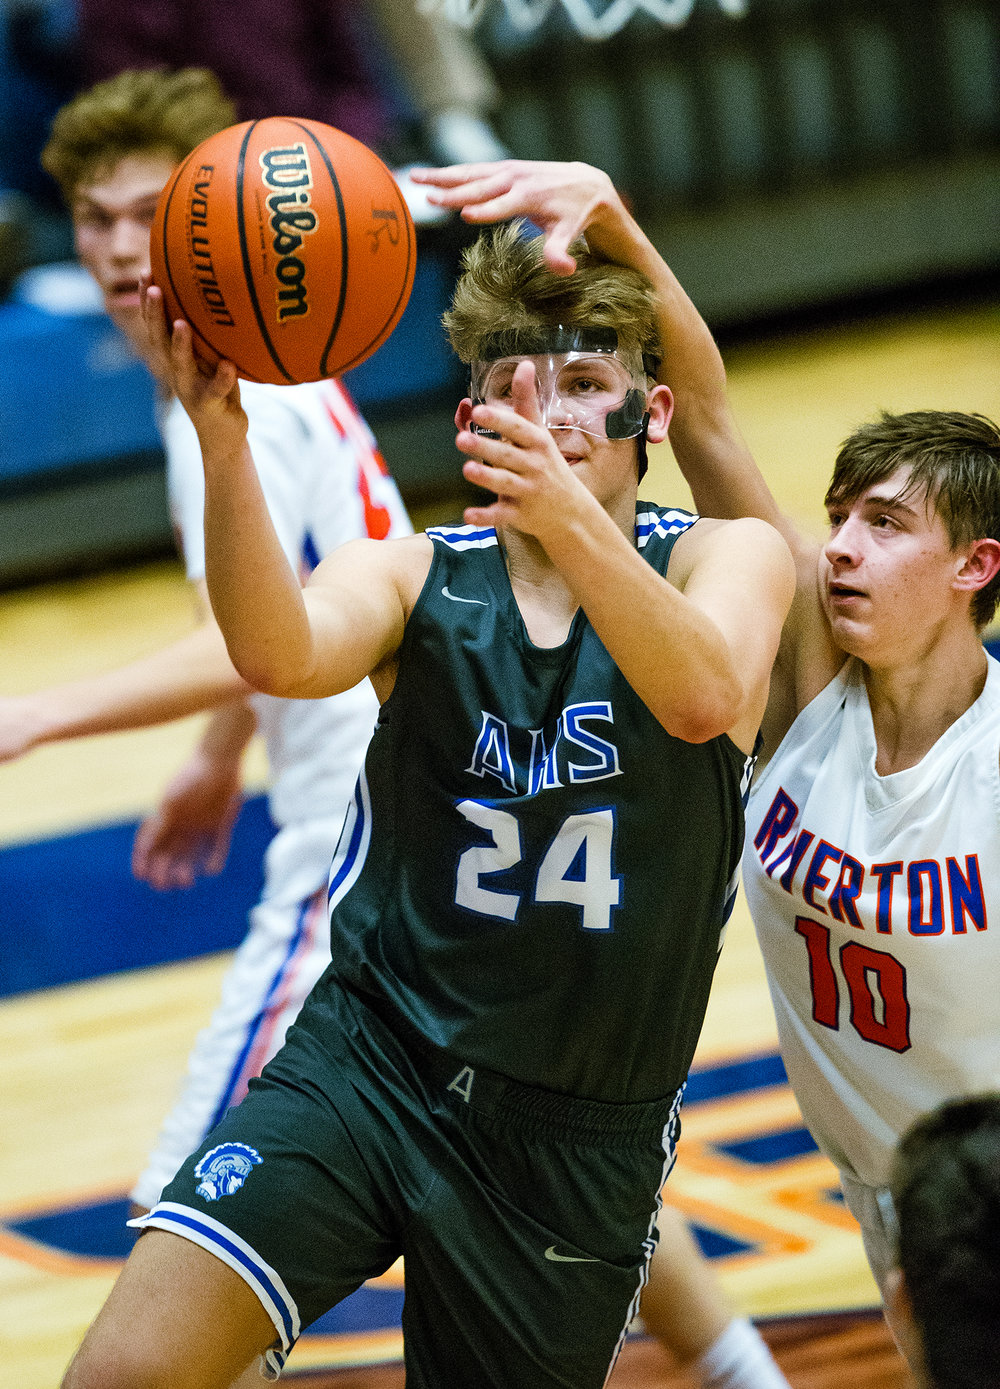 Auburn's Luke Hunley drives to the hoop past Riverton's Dayton Durham at Riverton High School Tuesday, Dec. 18, 2018. [Ted Schurter/The State Journal-Register]